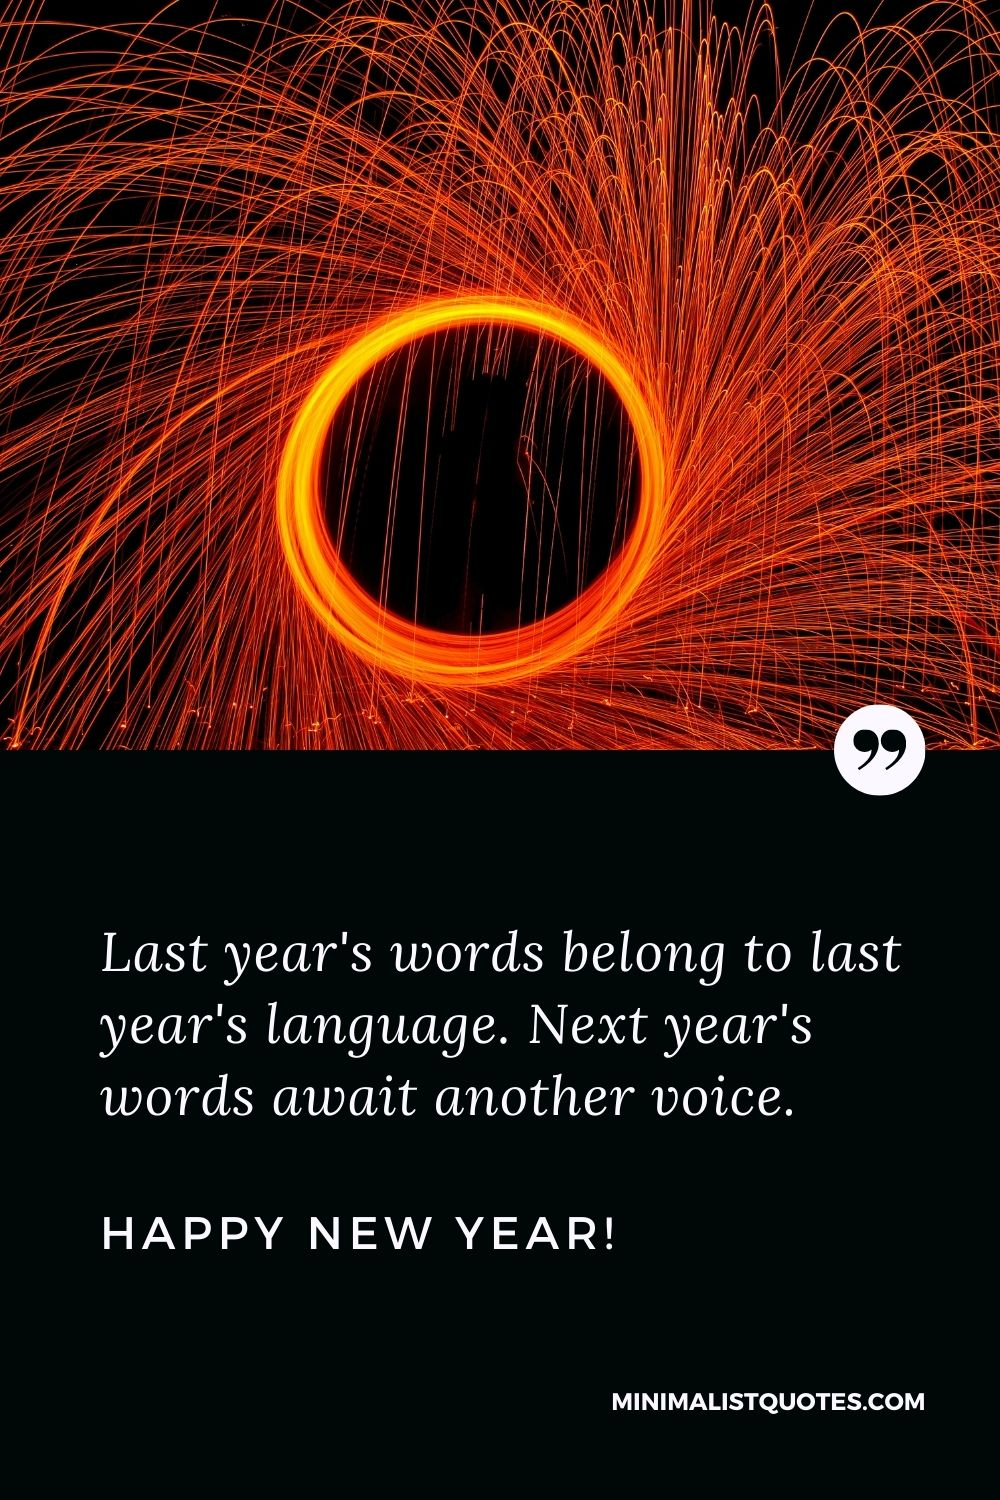 New year motivational quote: Last year's words belong to last year's language. Next year's words await another voice. Happy New Year!